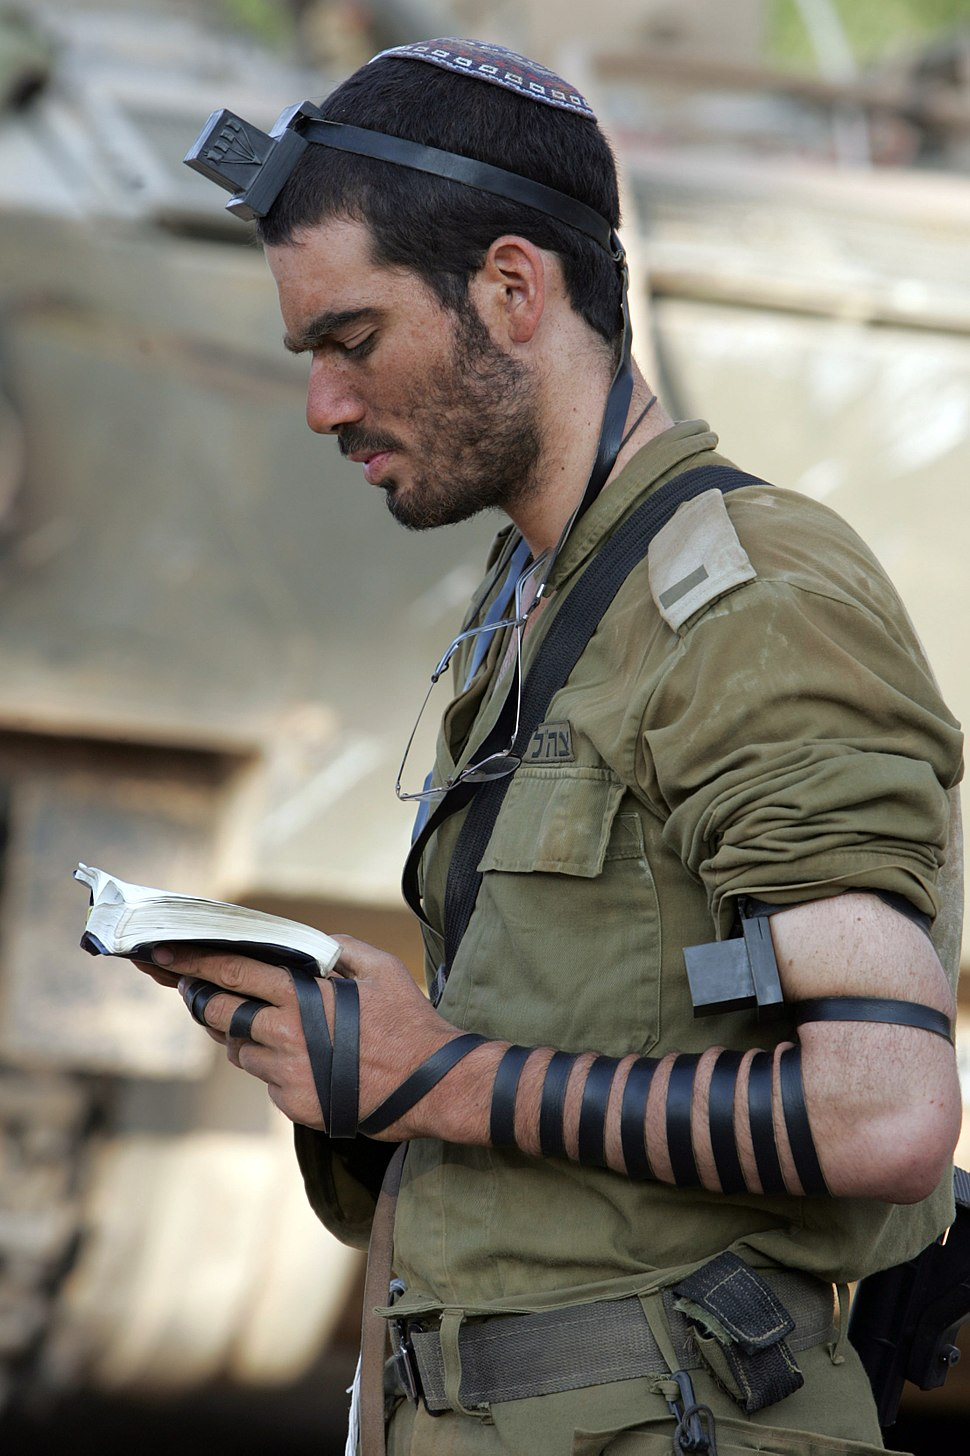 IDF soldier put on tefillin